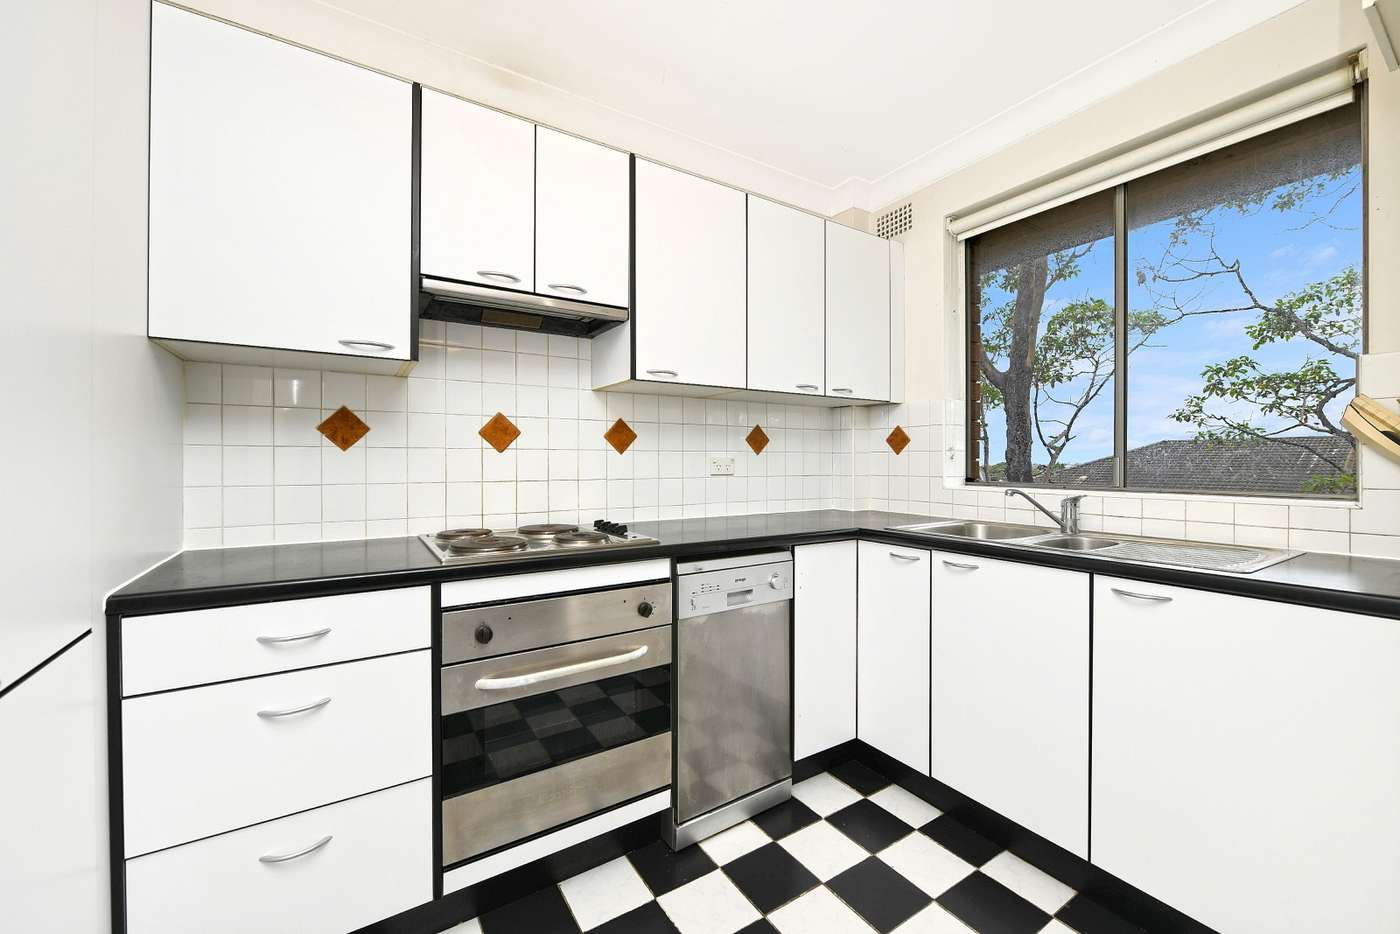 Main view of Homely apartment listing, 11/35 Livingstone Road, Petersham NSW 2049